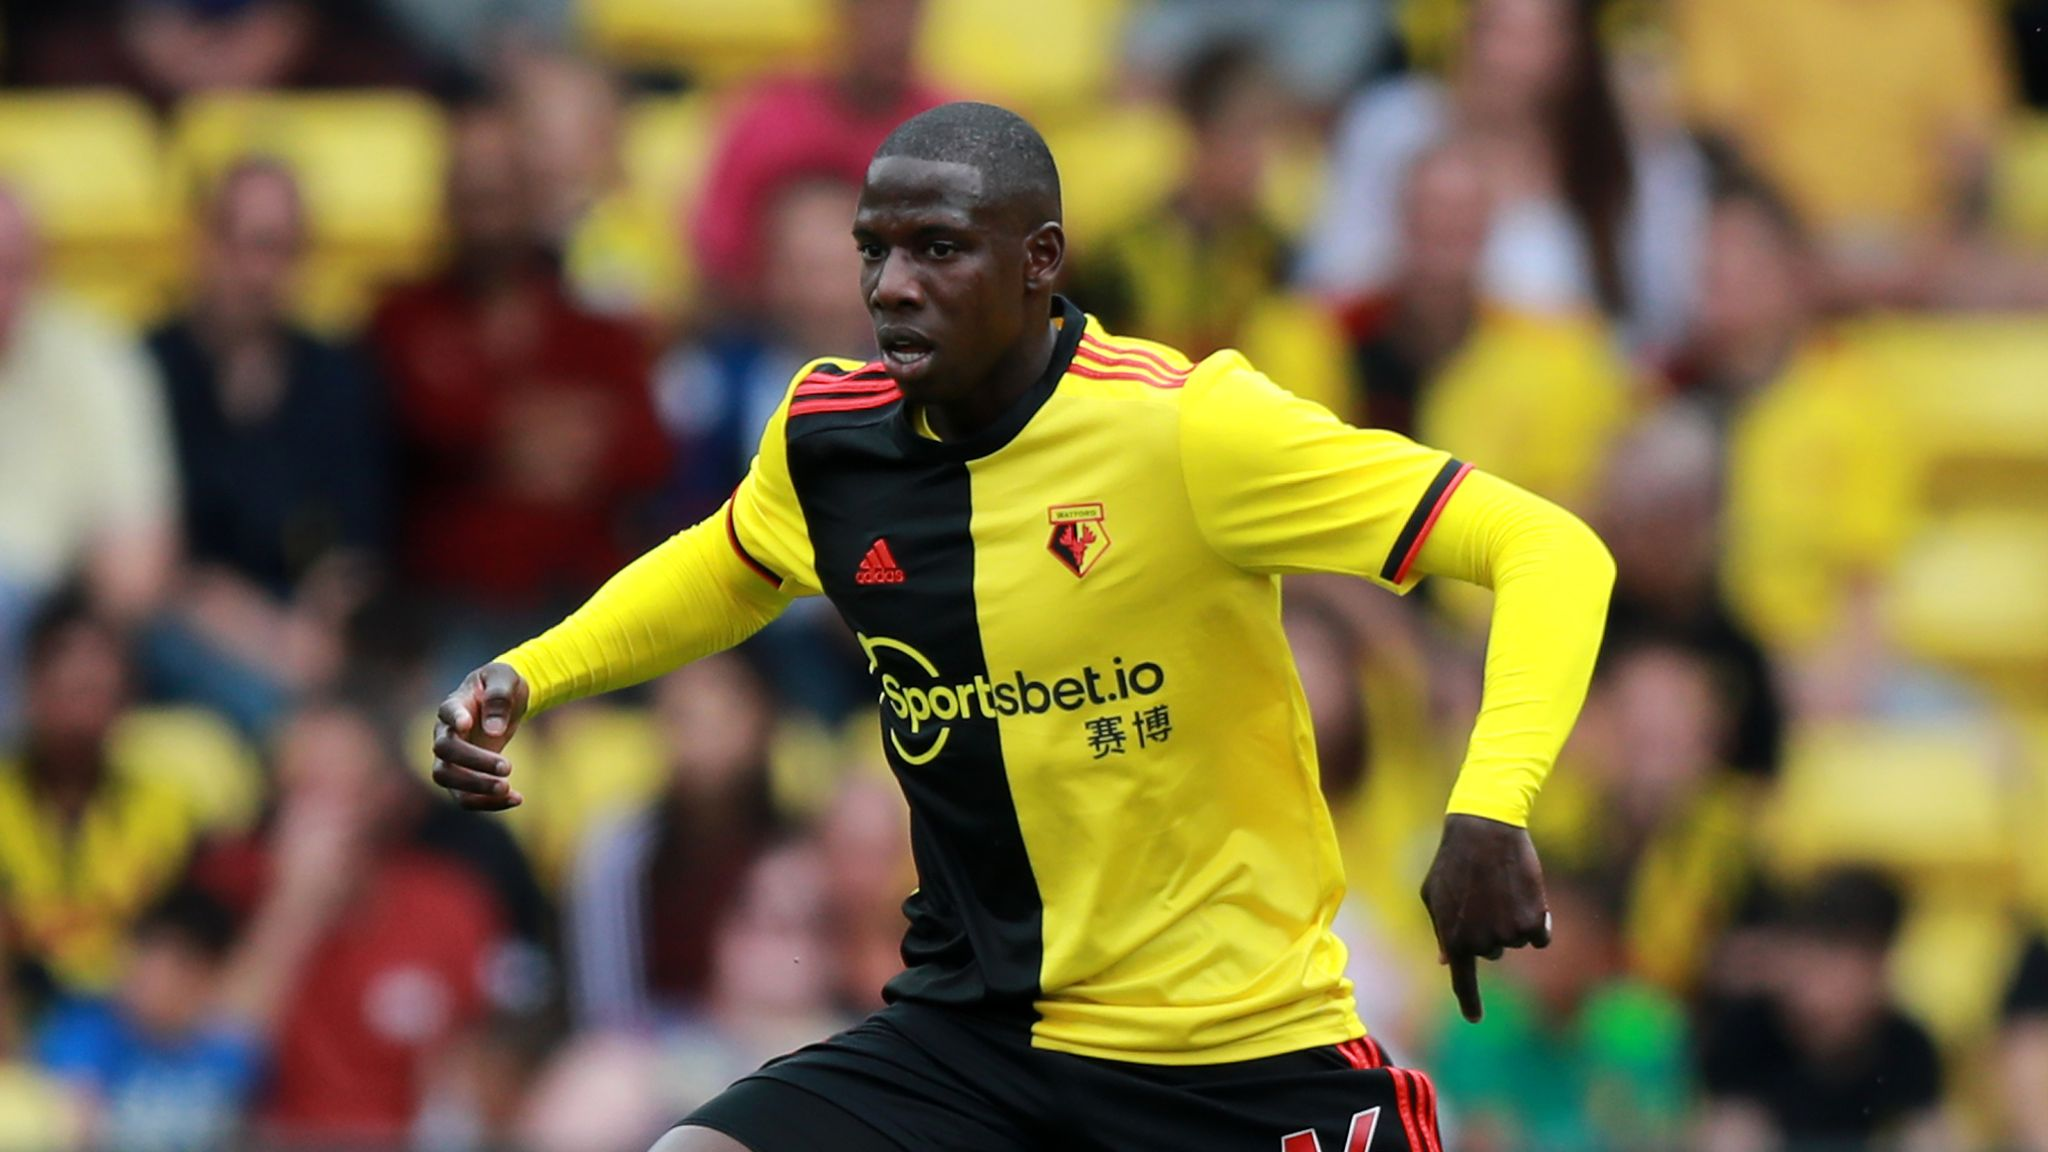 The 27-year old son of father (?) and mother(?) Abdoulaye Doucouré in 2020 photo. Abdoulaye Doucouré earned a 0.3 million dollar salary - leaving the net worth at  million in 2020